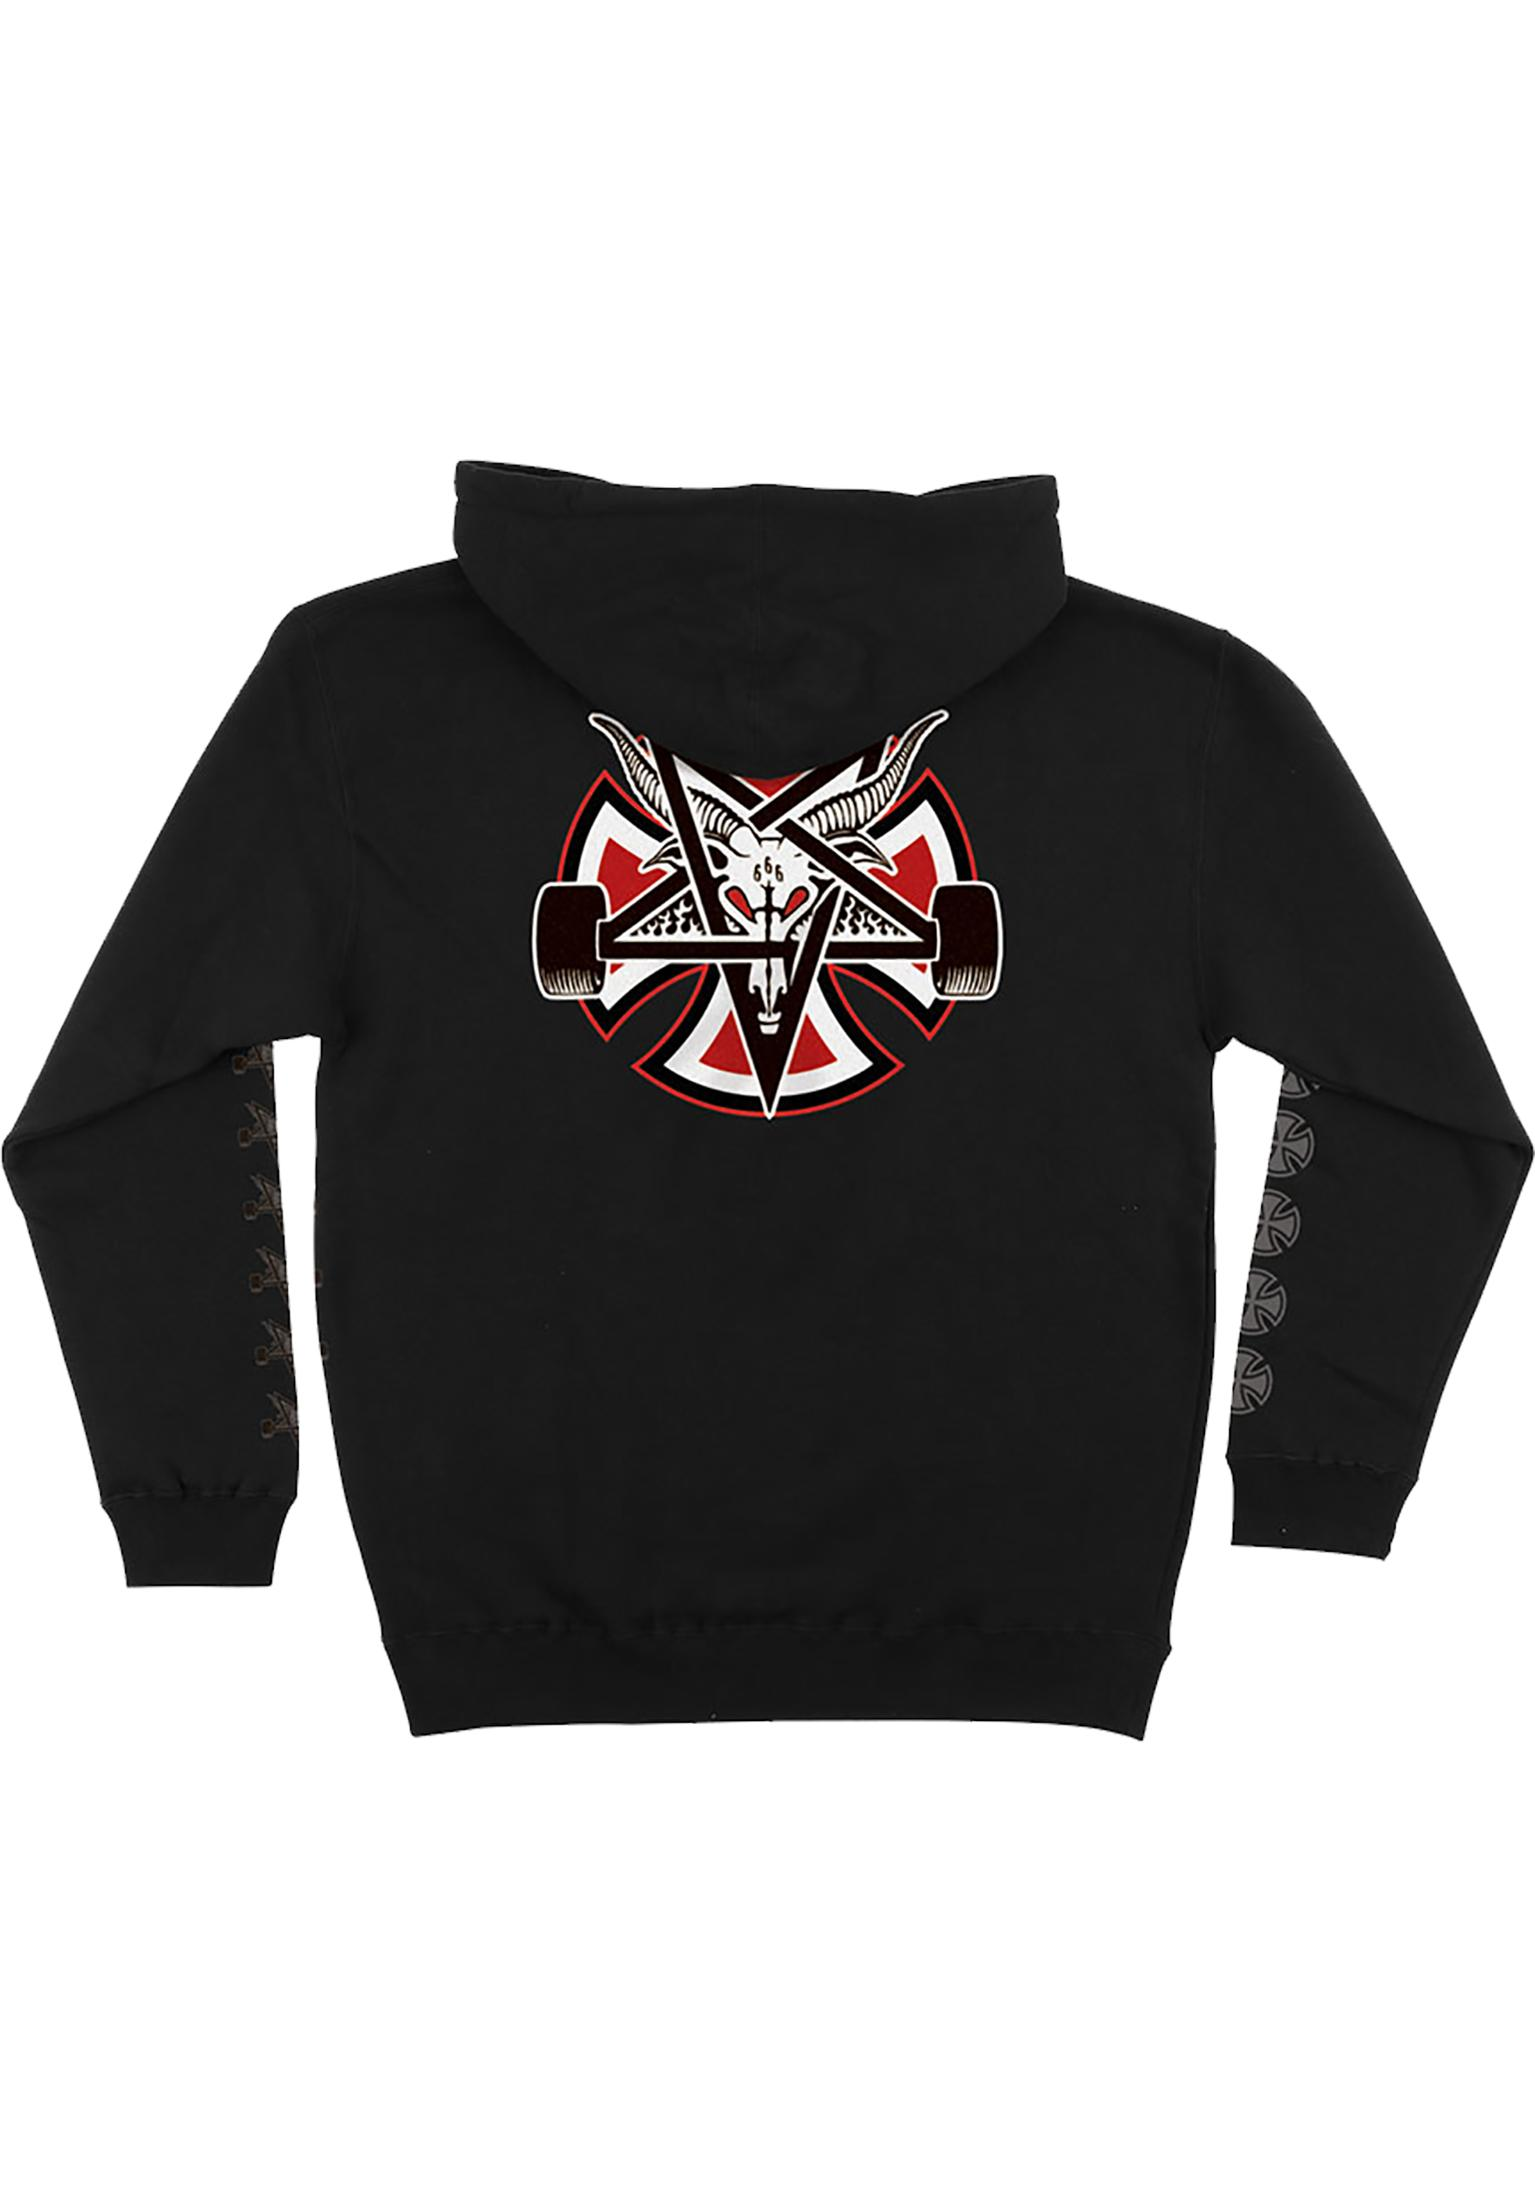 Titus_Muenchen_independent-hoodie-thrasher-pentagram-cross-lightweight-black-0444942_back.jpg